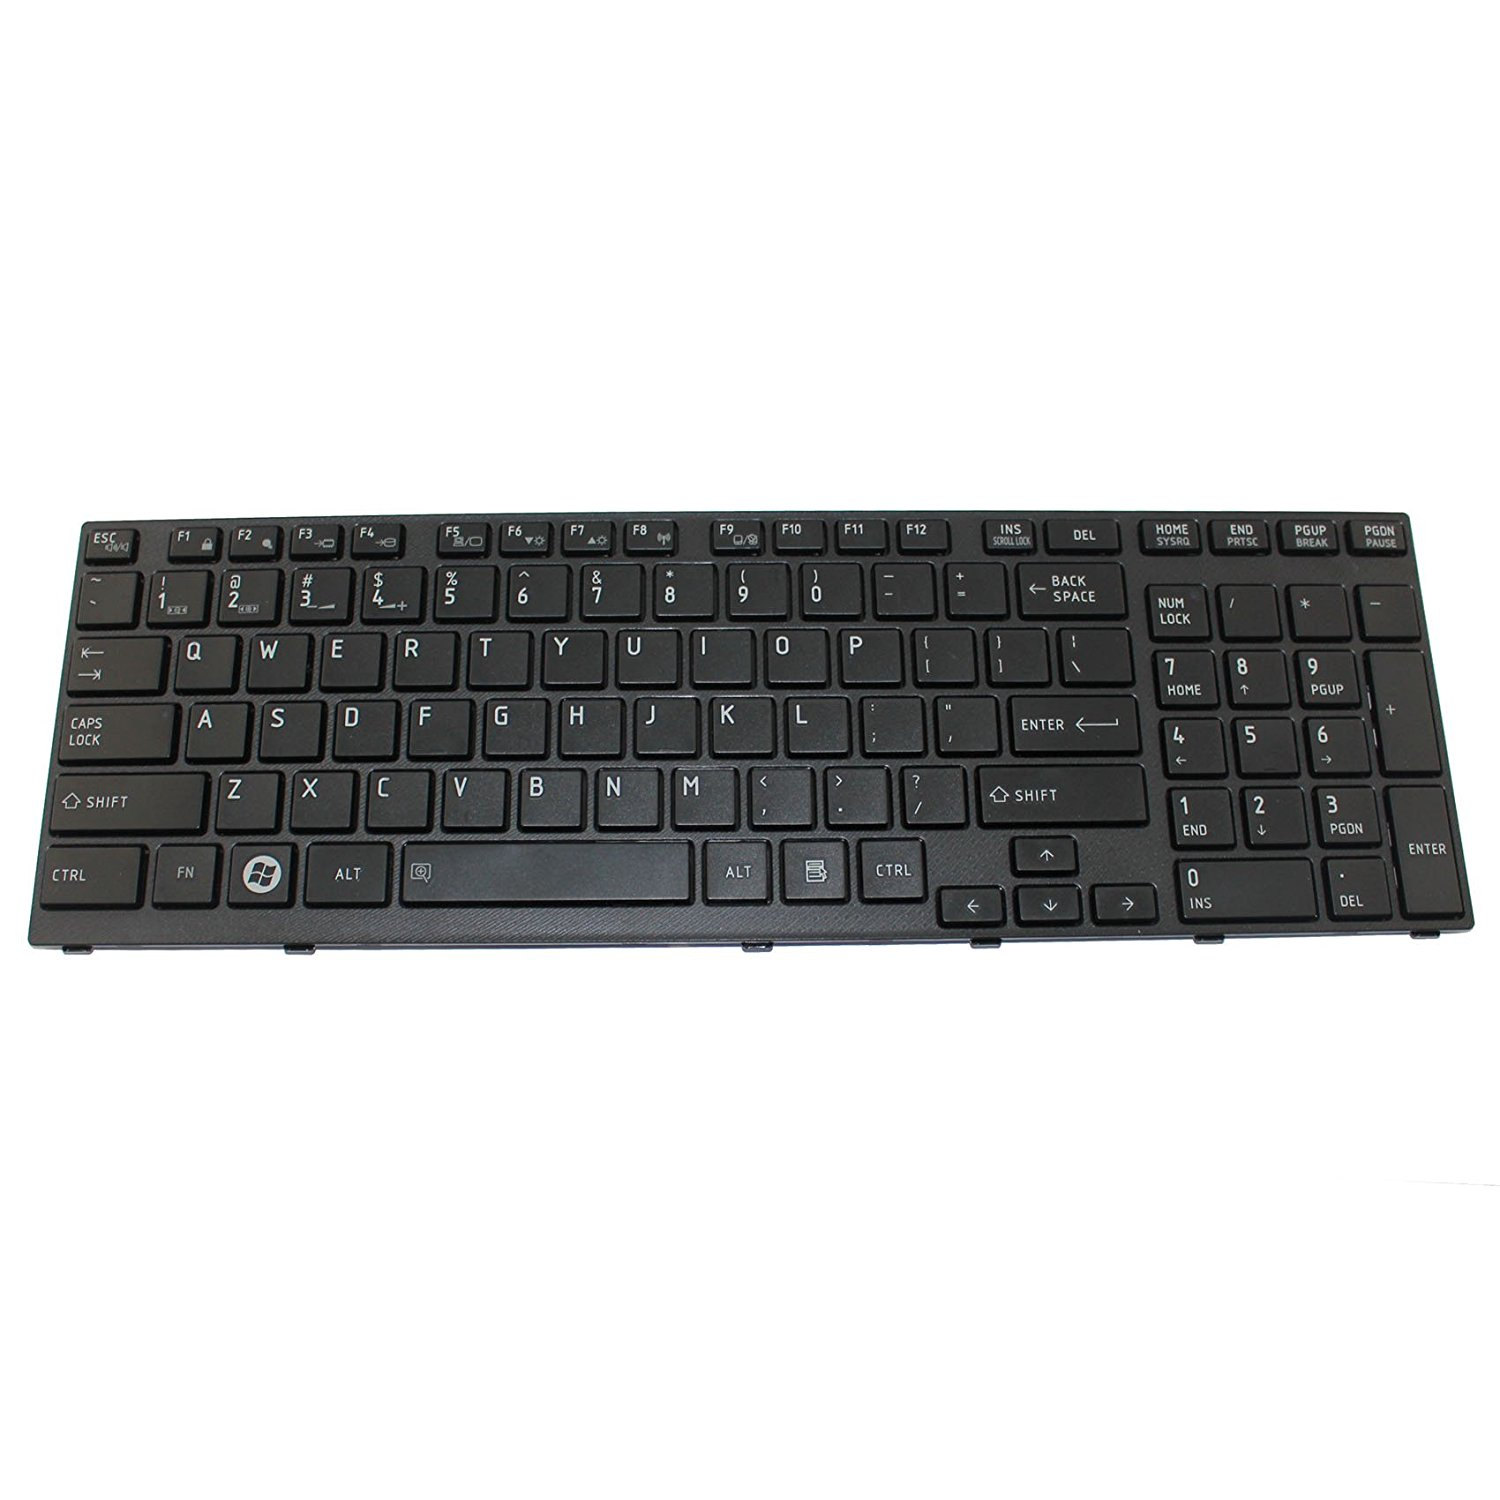 cheap for toshiba a650 a660 a665 laptop keyboard find for toshiba rh guide alibaba com